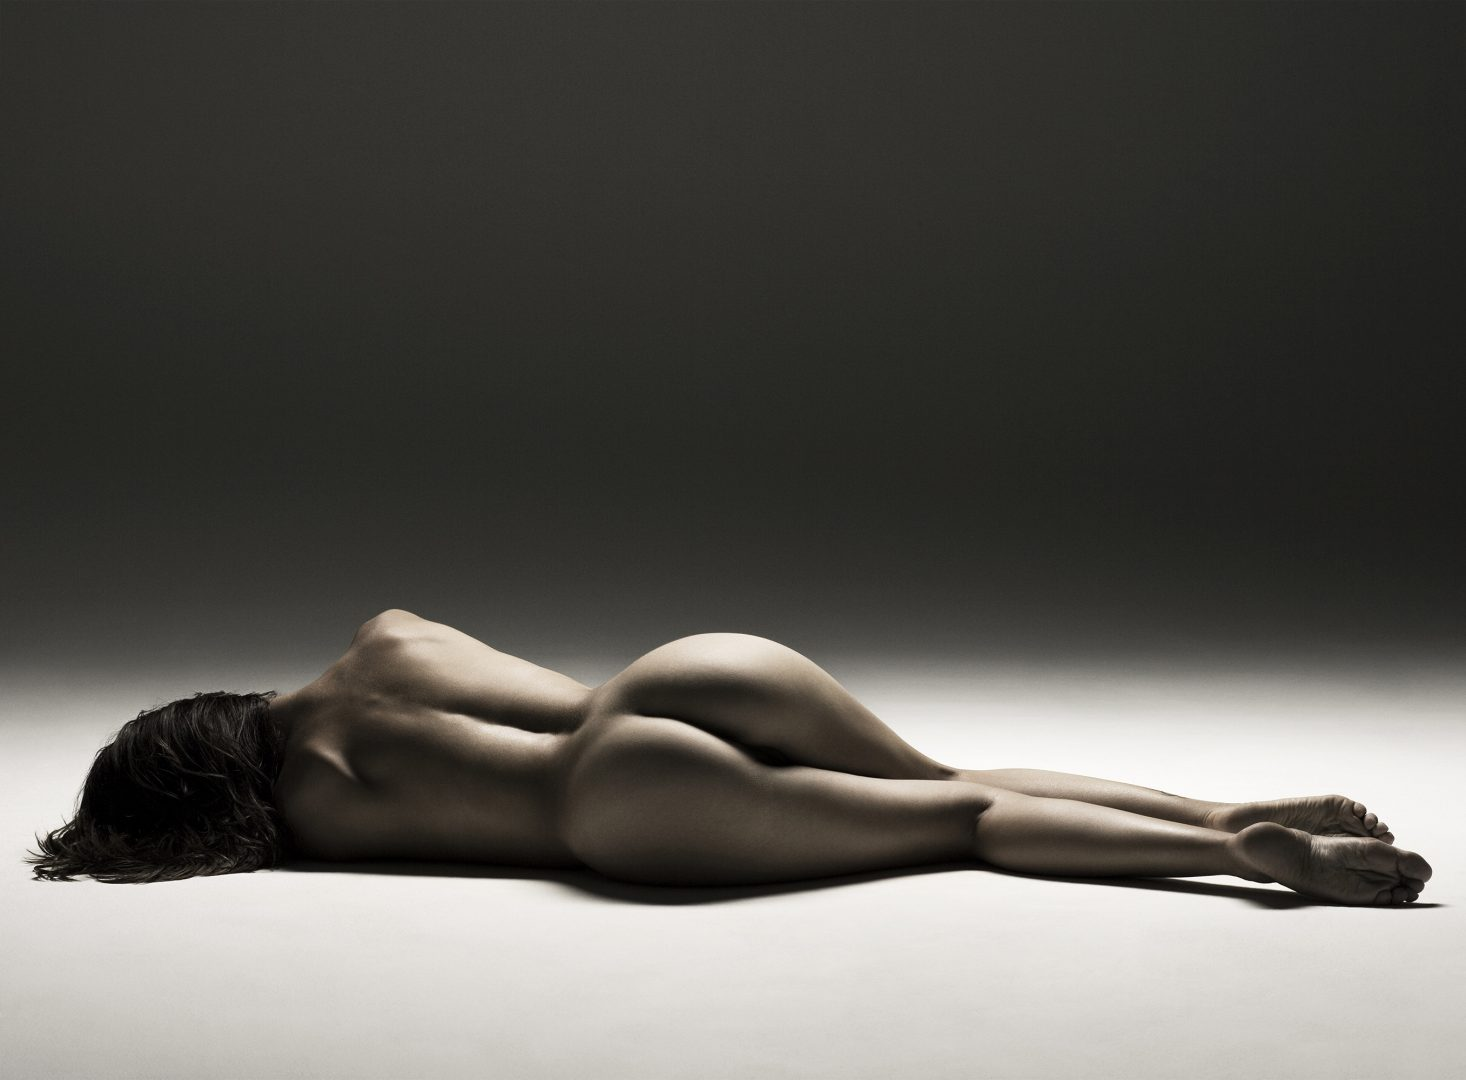 Naked girl from the back lying on floor by Stefan Rappo